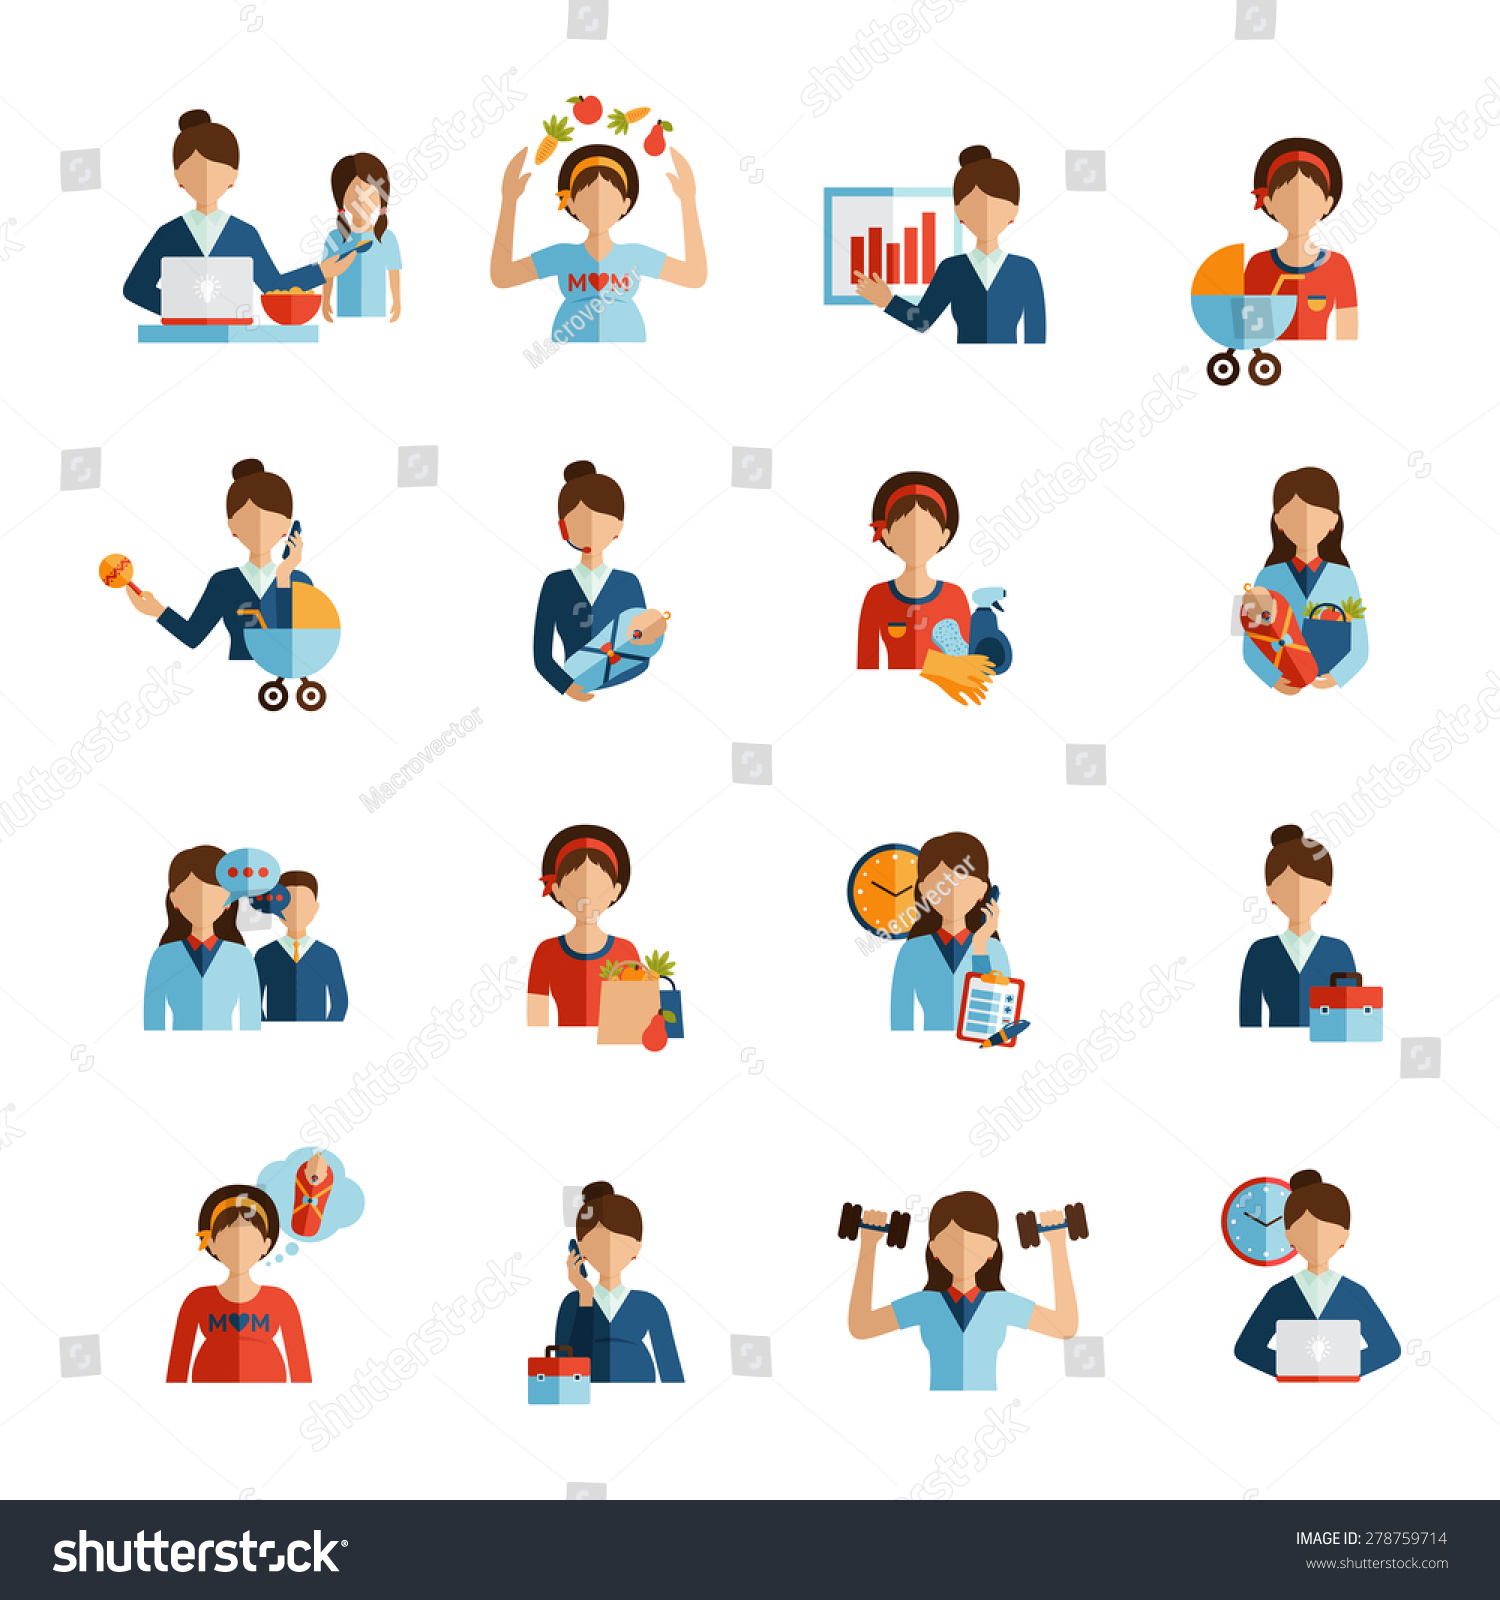 businessw mother daily routine successful work stock vector businessw mother daily routine successful work family and fitness combination flat icons set abstract vector isolated